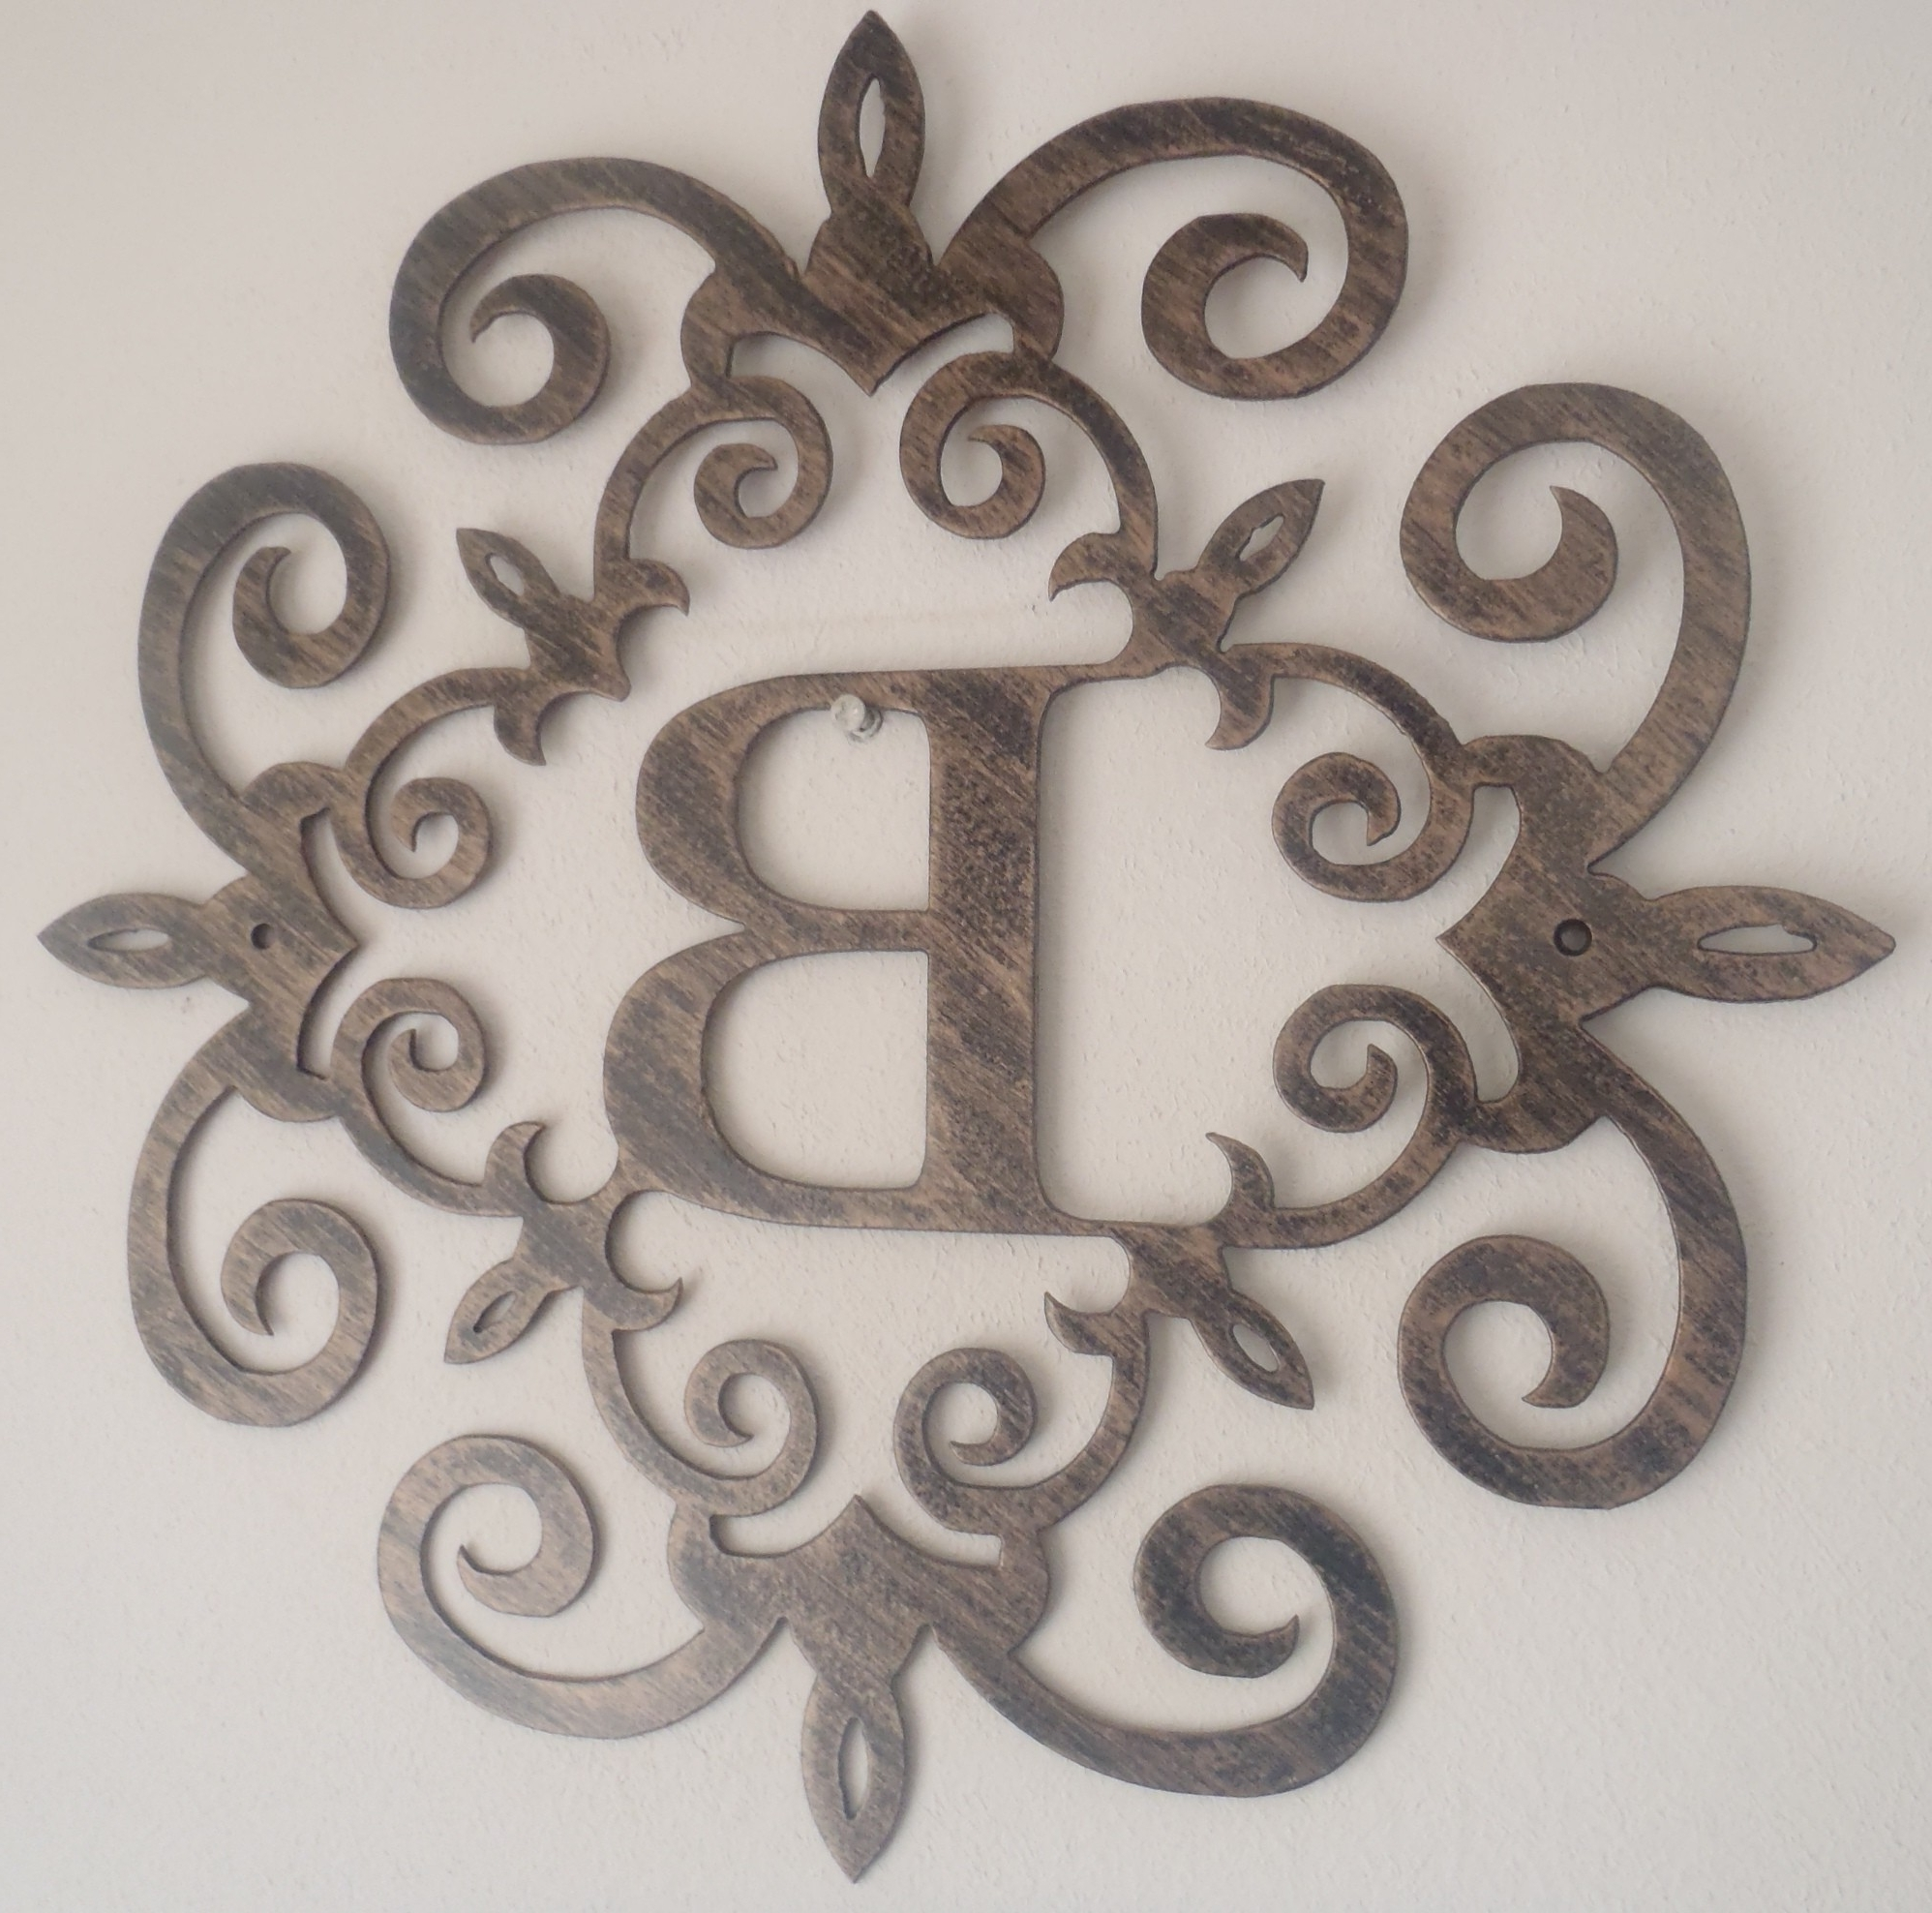 Decorative Metal Letters Wall Art Pertaining To Widely Used Wall Decor: Best 20 Decorative Metal Letters For Wall Metal (View 5 of 15)